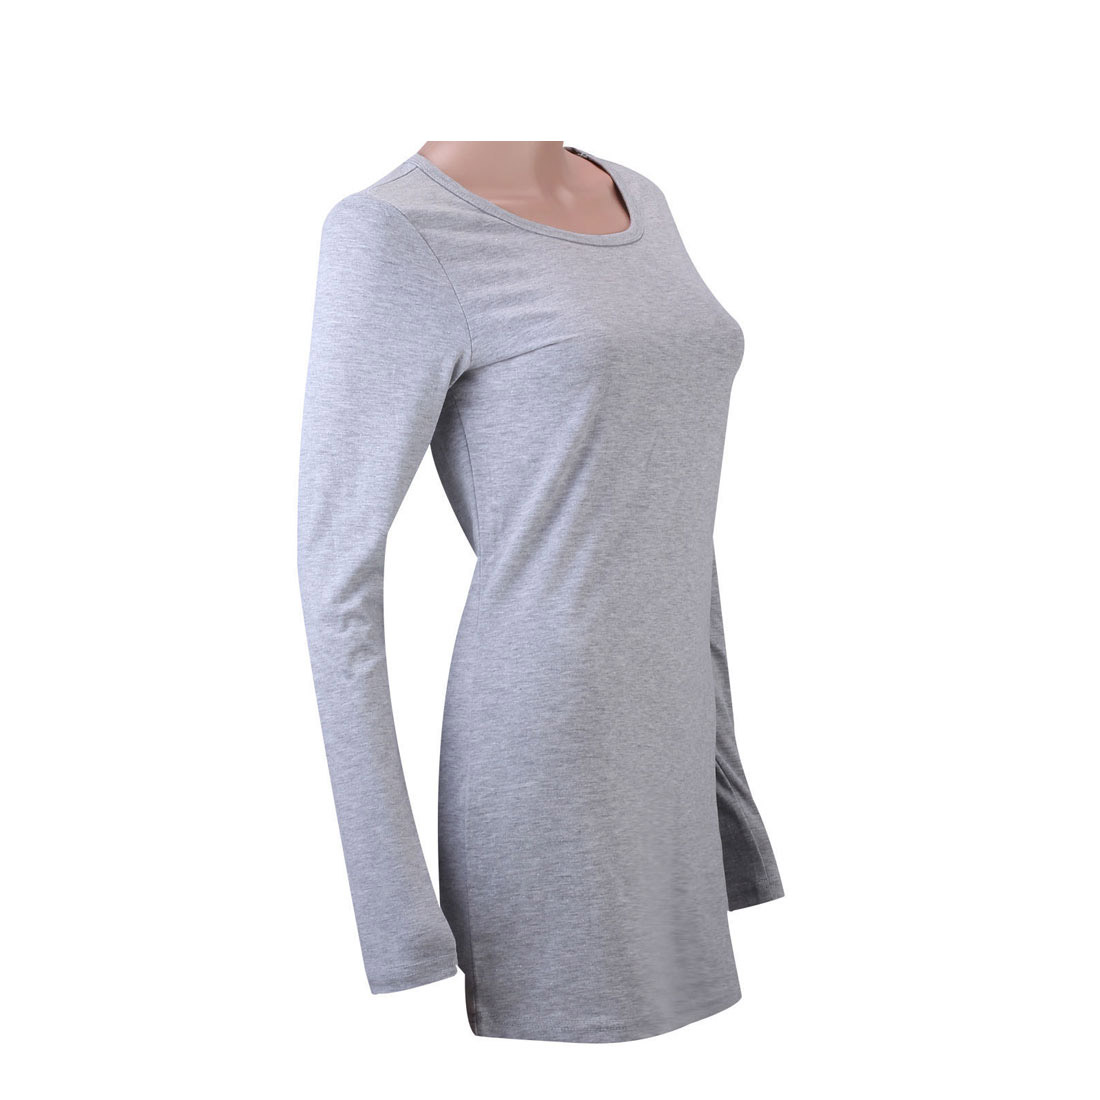 100 cotton womens v neck crew neck long sleeve t shirt for Women s 100 cotton long sleeve tee shirts